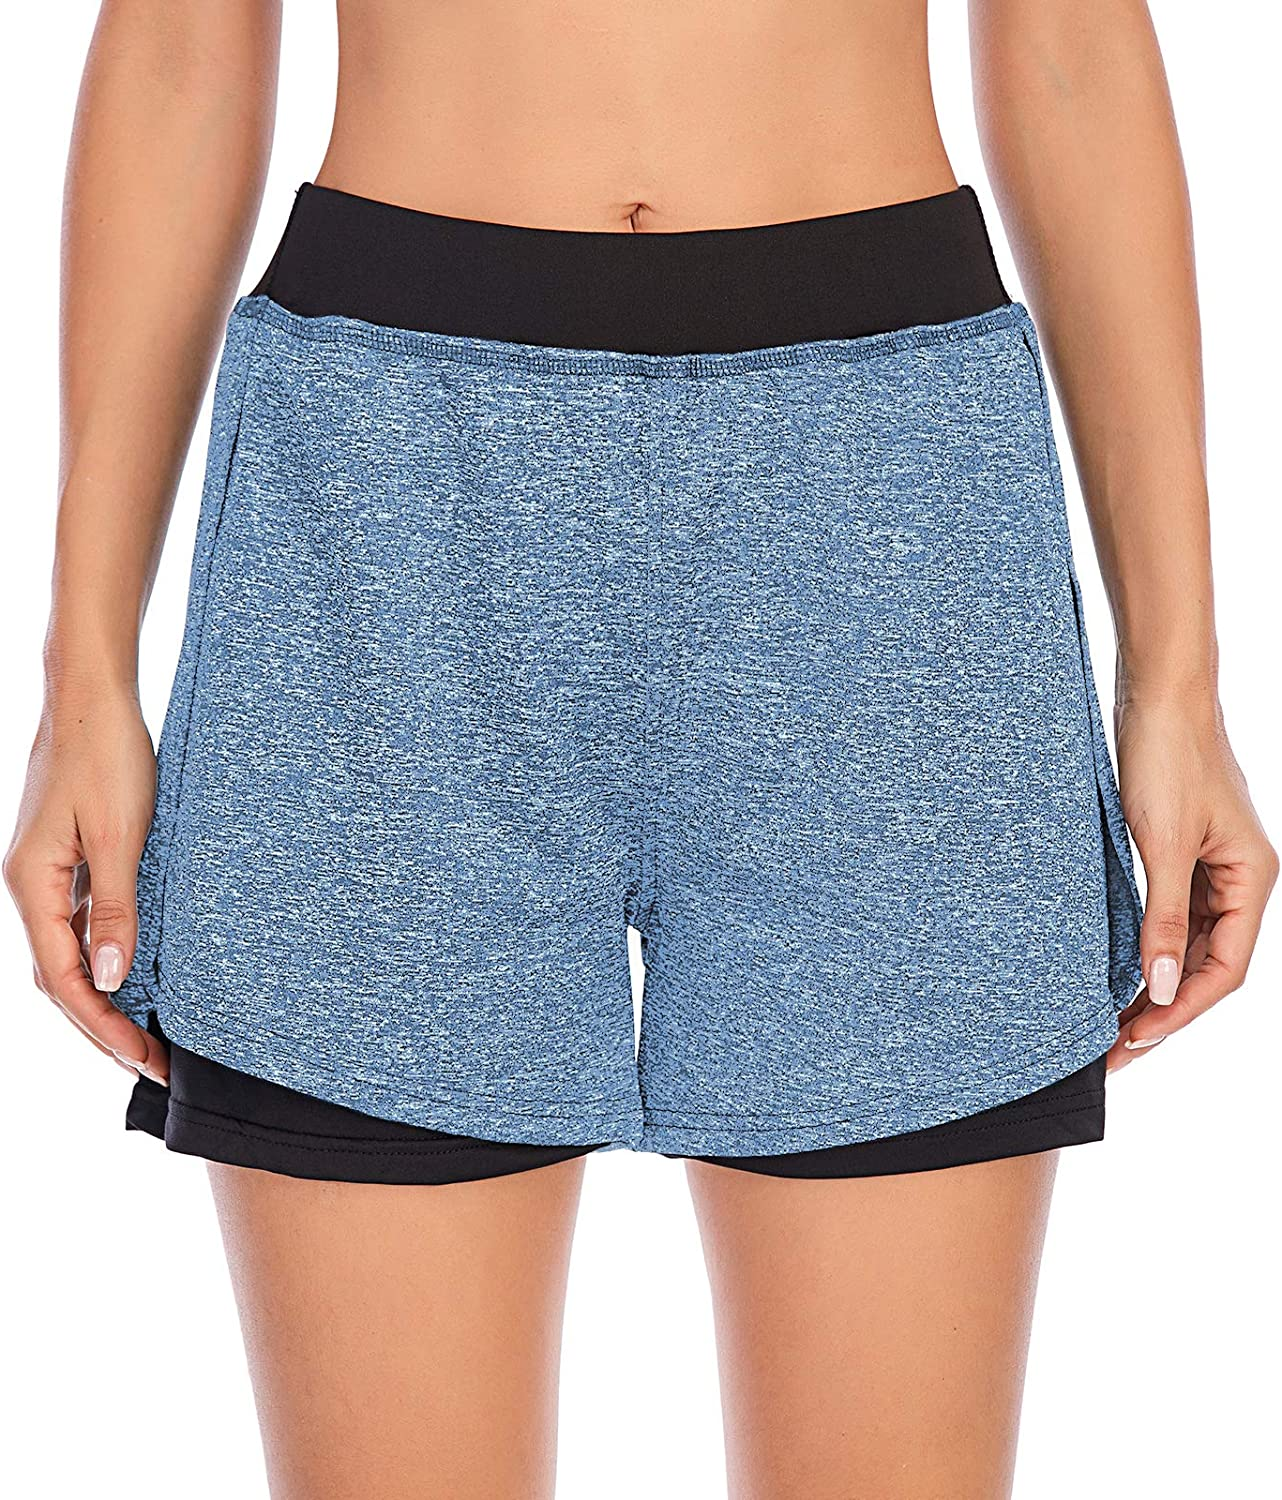 Cucuchy Womens Running Yoga Shorts Double-Layer Athletic Workout Pants with Pocket